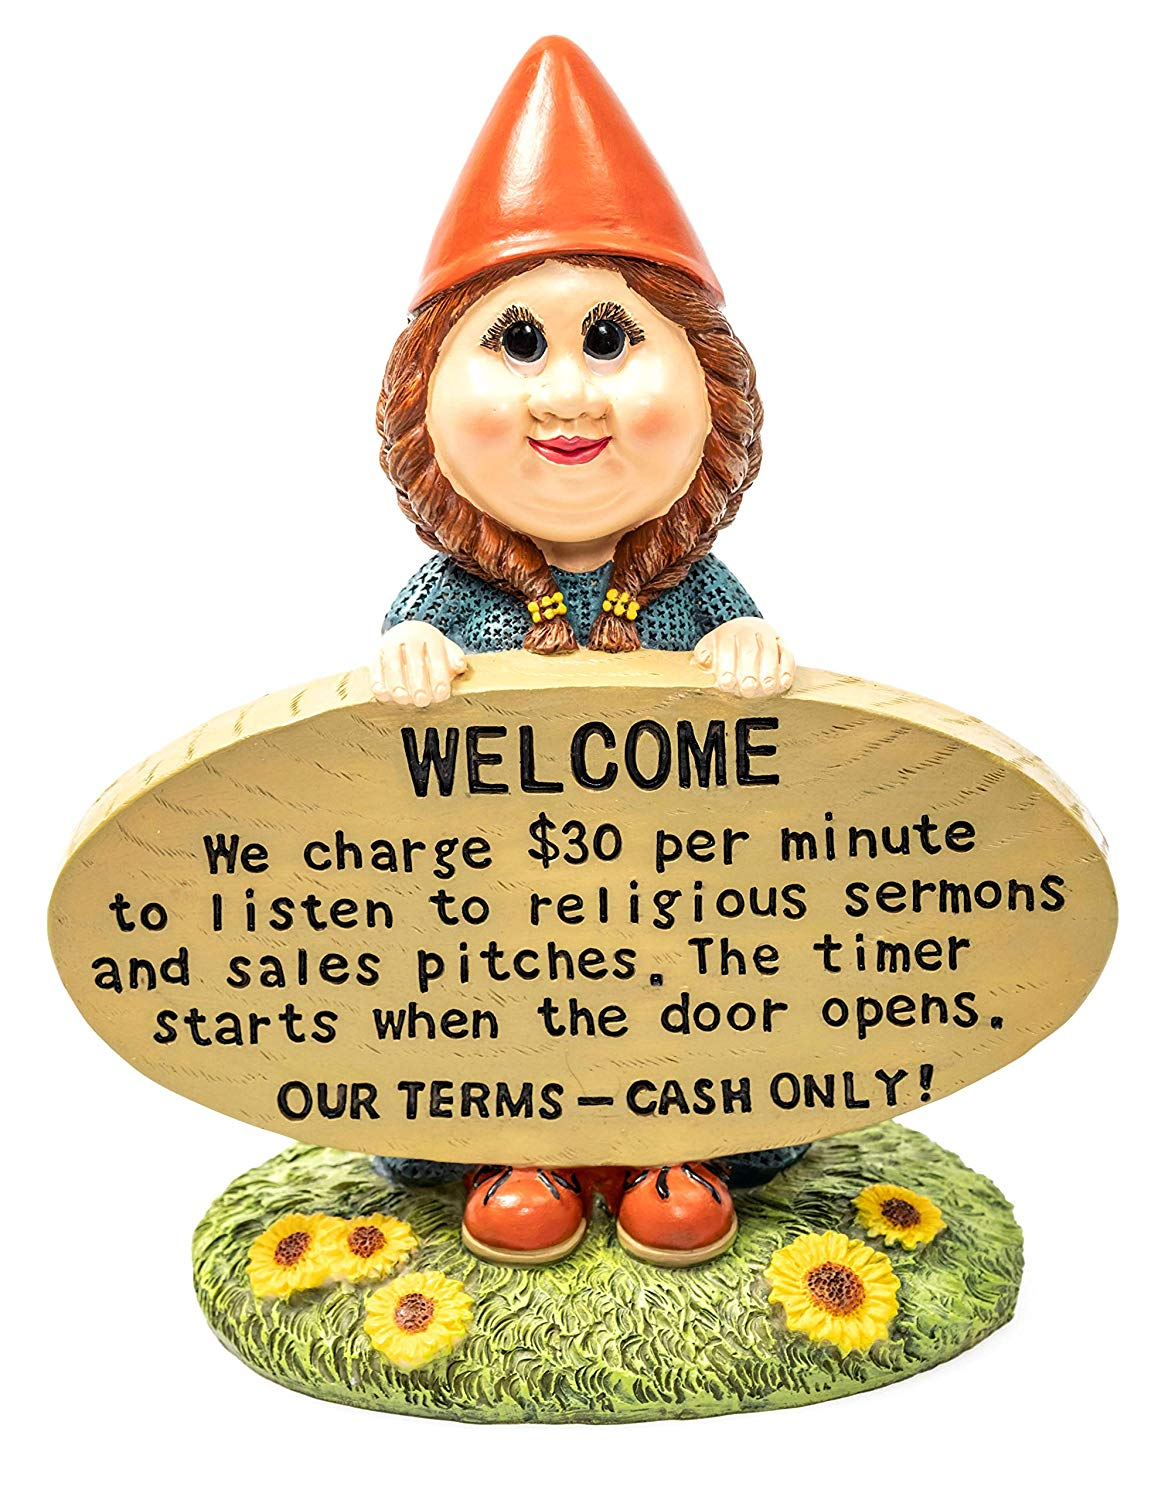 """Brashfords Lawn and Garden Gnome Statue Figurine. 8 1/2"""" with Funny Welcome Sign for Home Decor. Unique Housewarming Gift for The Home and Garden, Yard, Porch and Lawn use."""